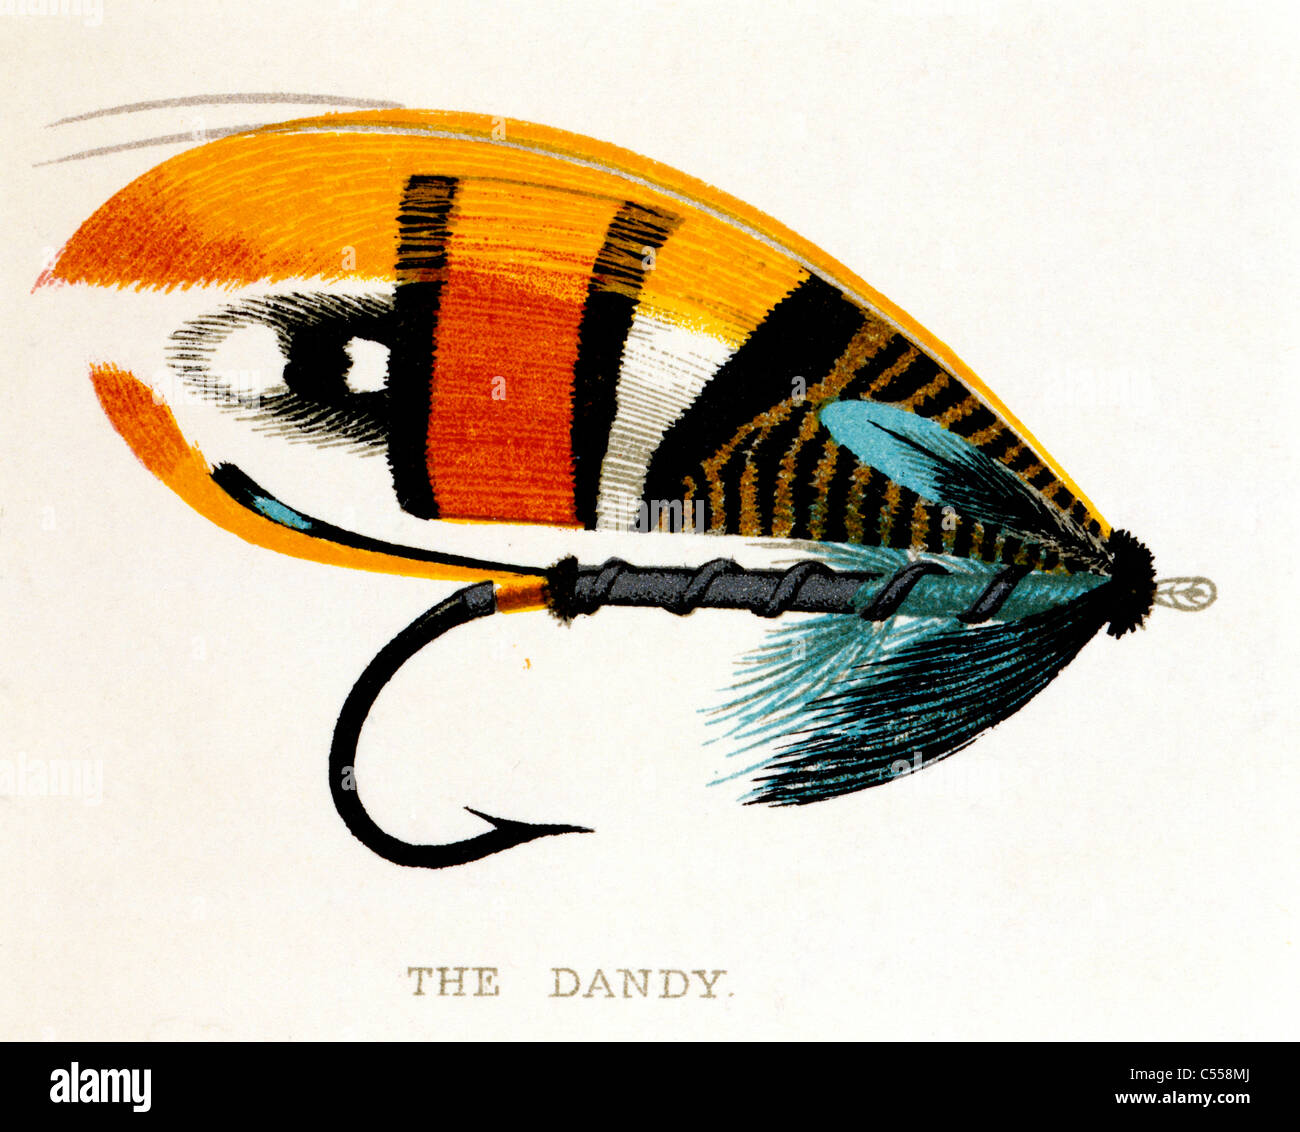 The Dandy Salmon Fly - Stock Image